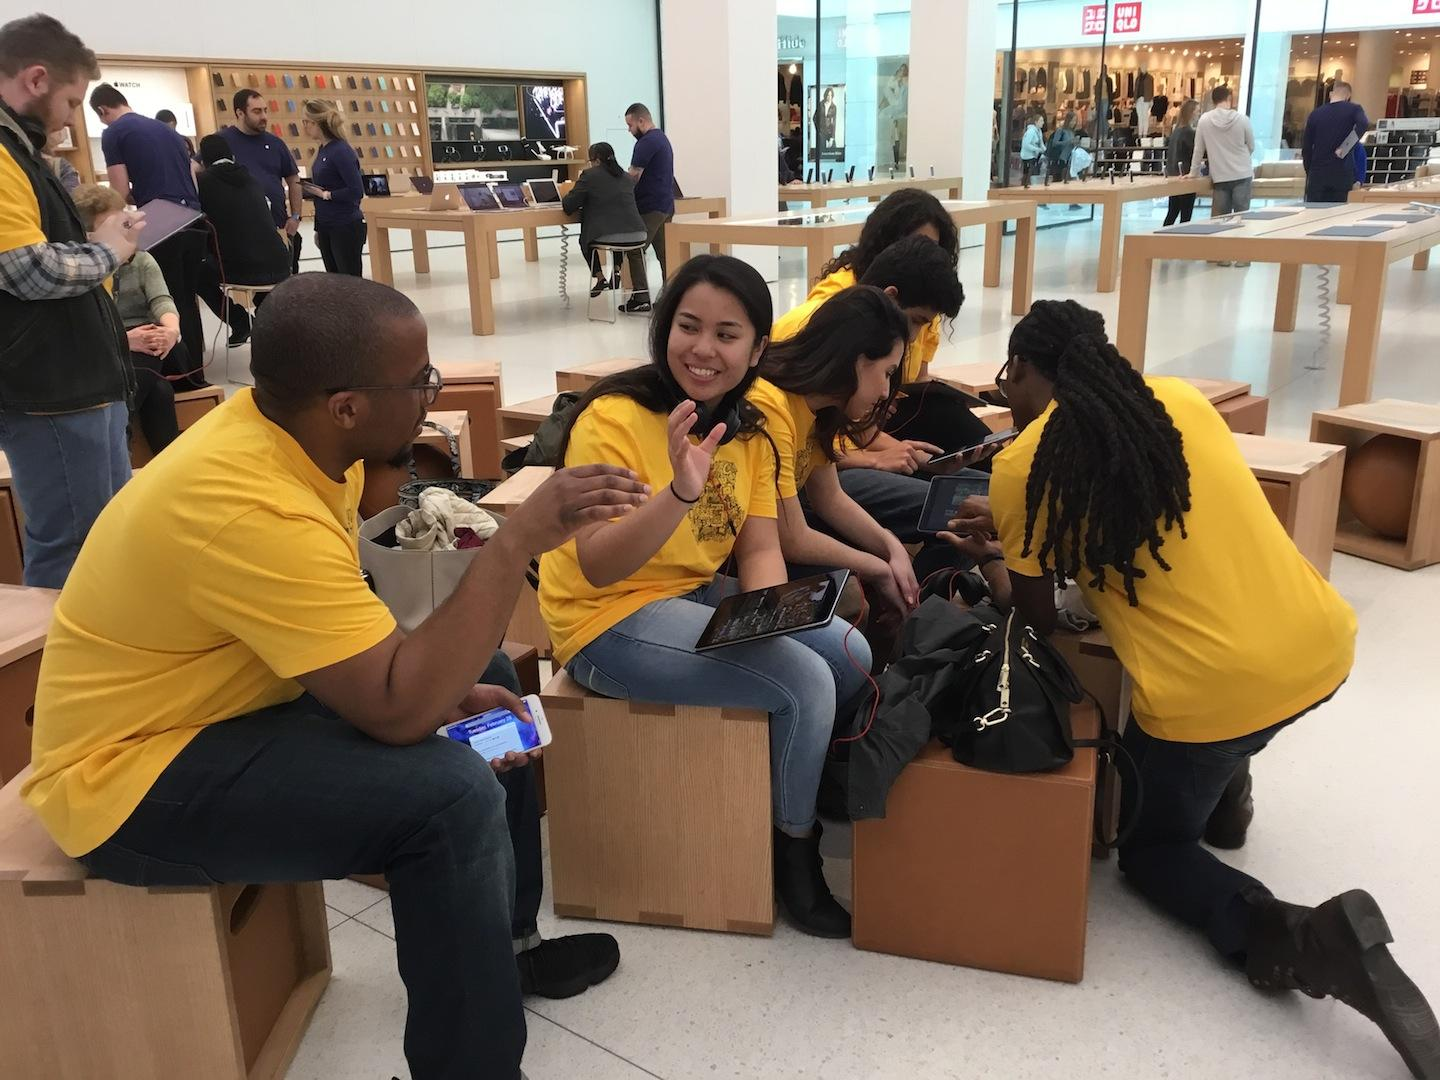 Students of Advancing with Apple work on projects assigned during field trip to Apple Store.